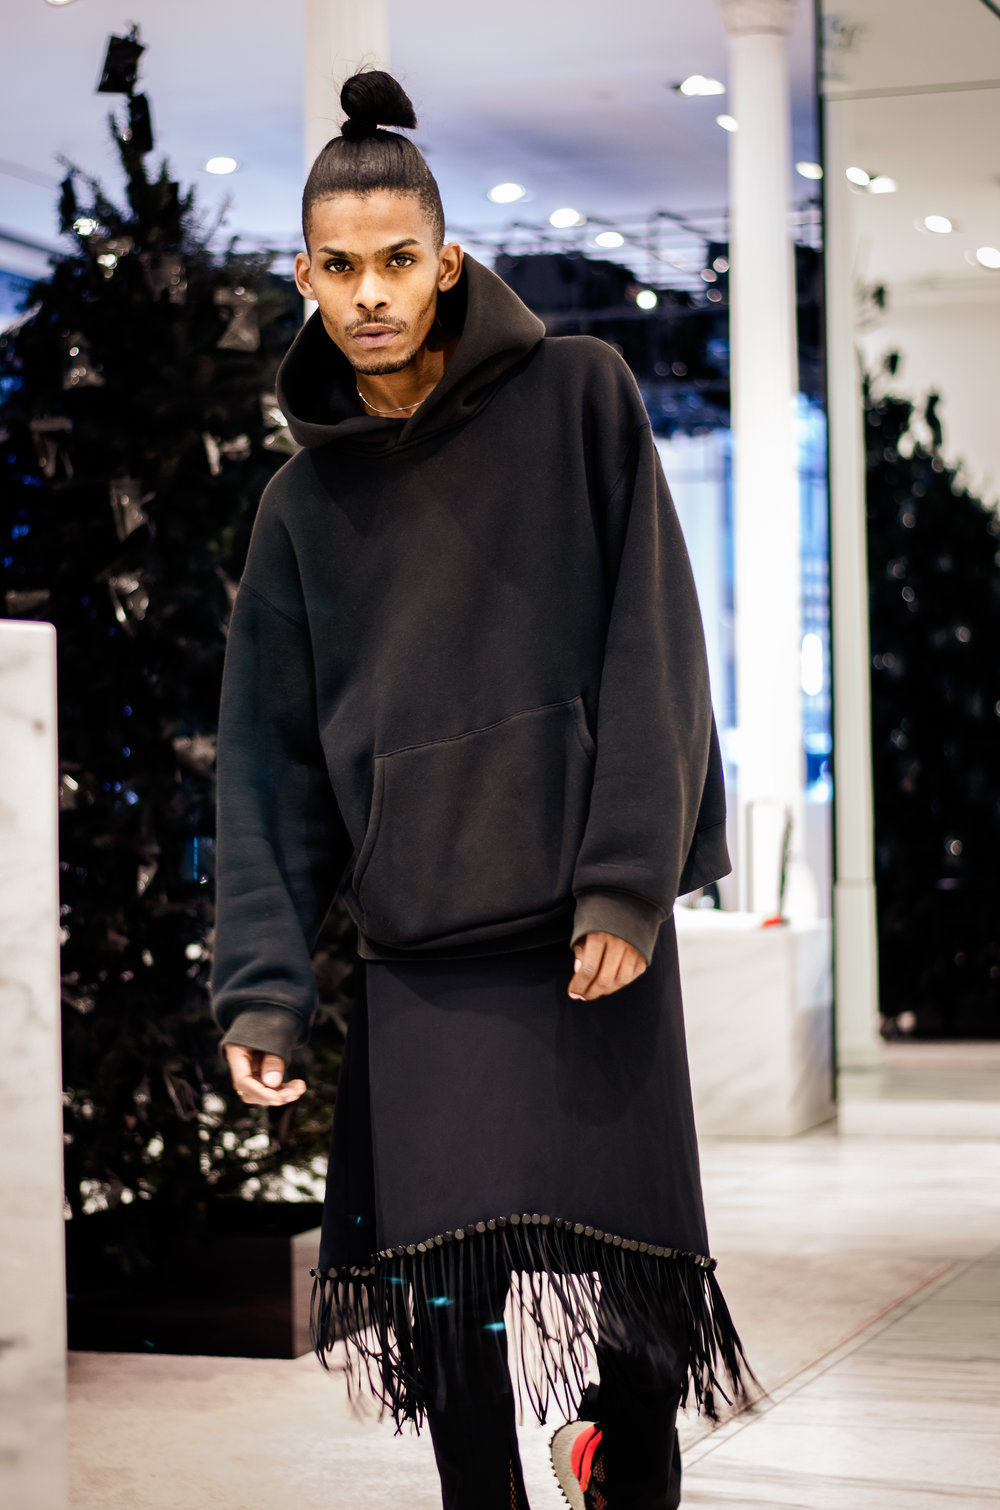 Minimal street goth possessed by the attitude of a style renegade (shot in the Alexander Wang store)